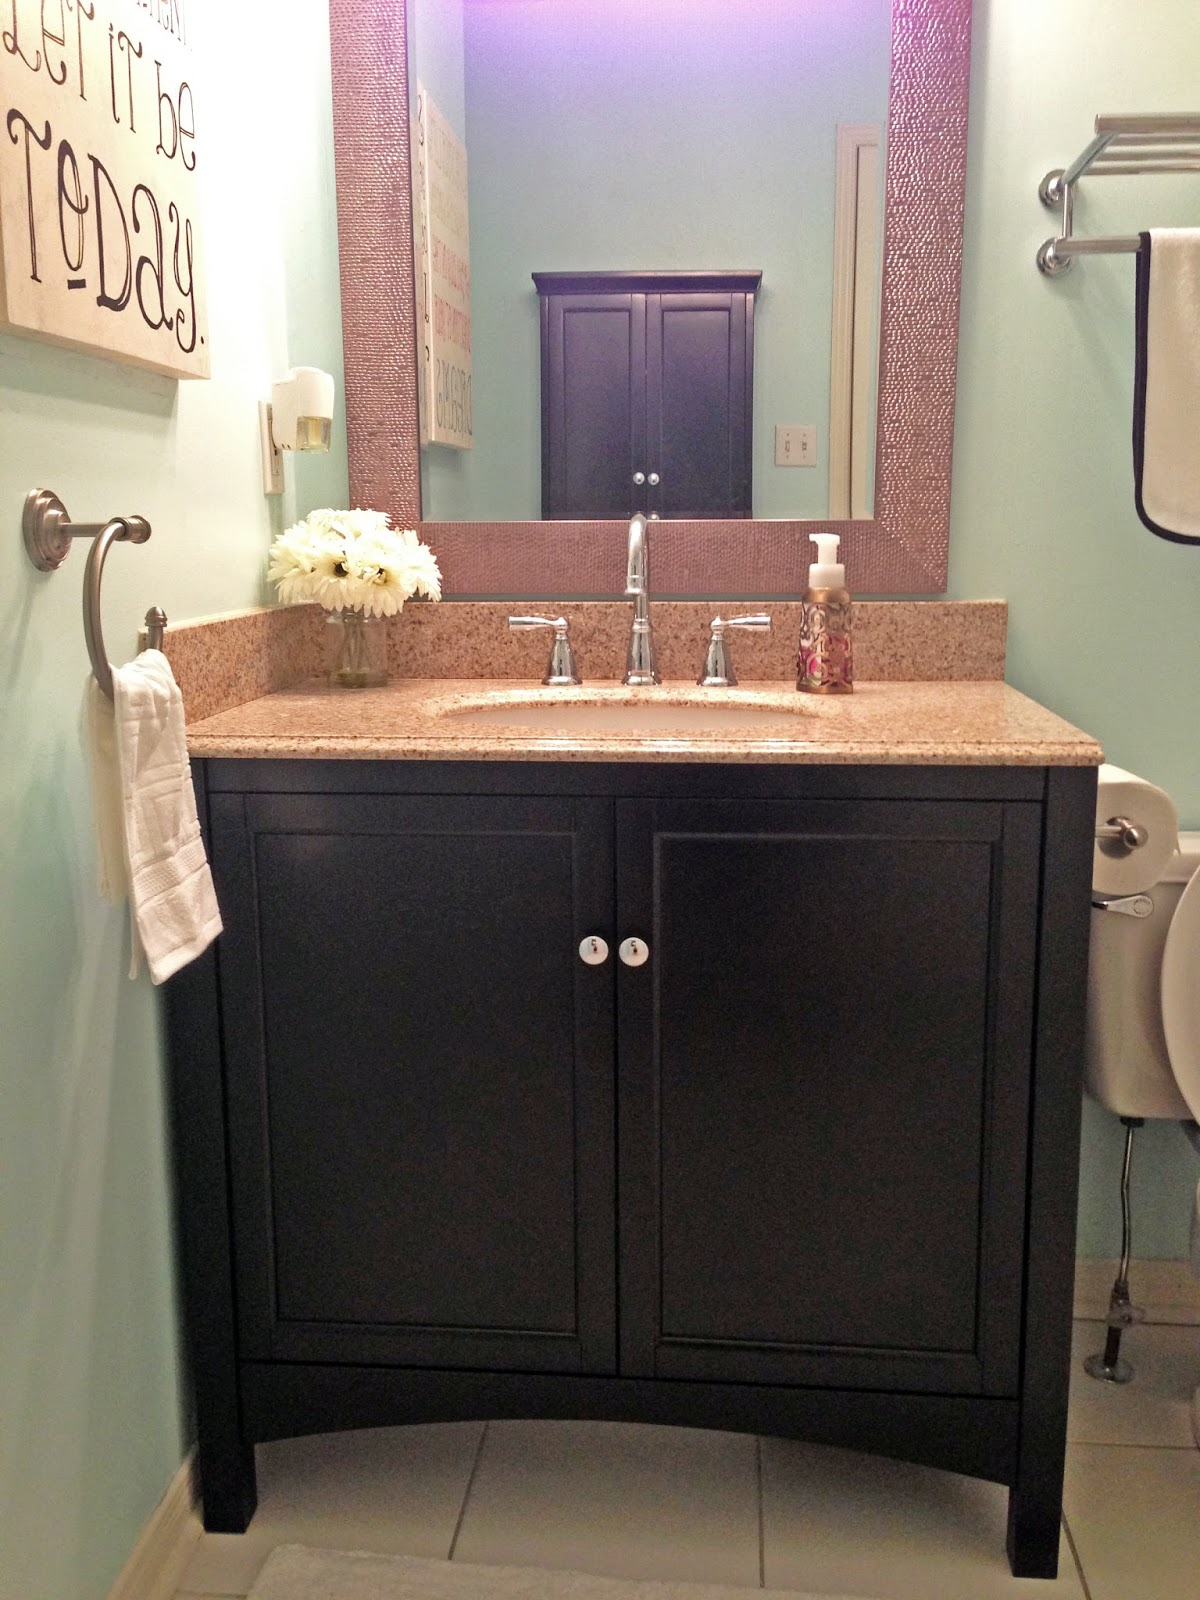 Pegasus Vanity Tops HomesFeed